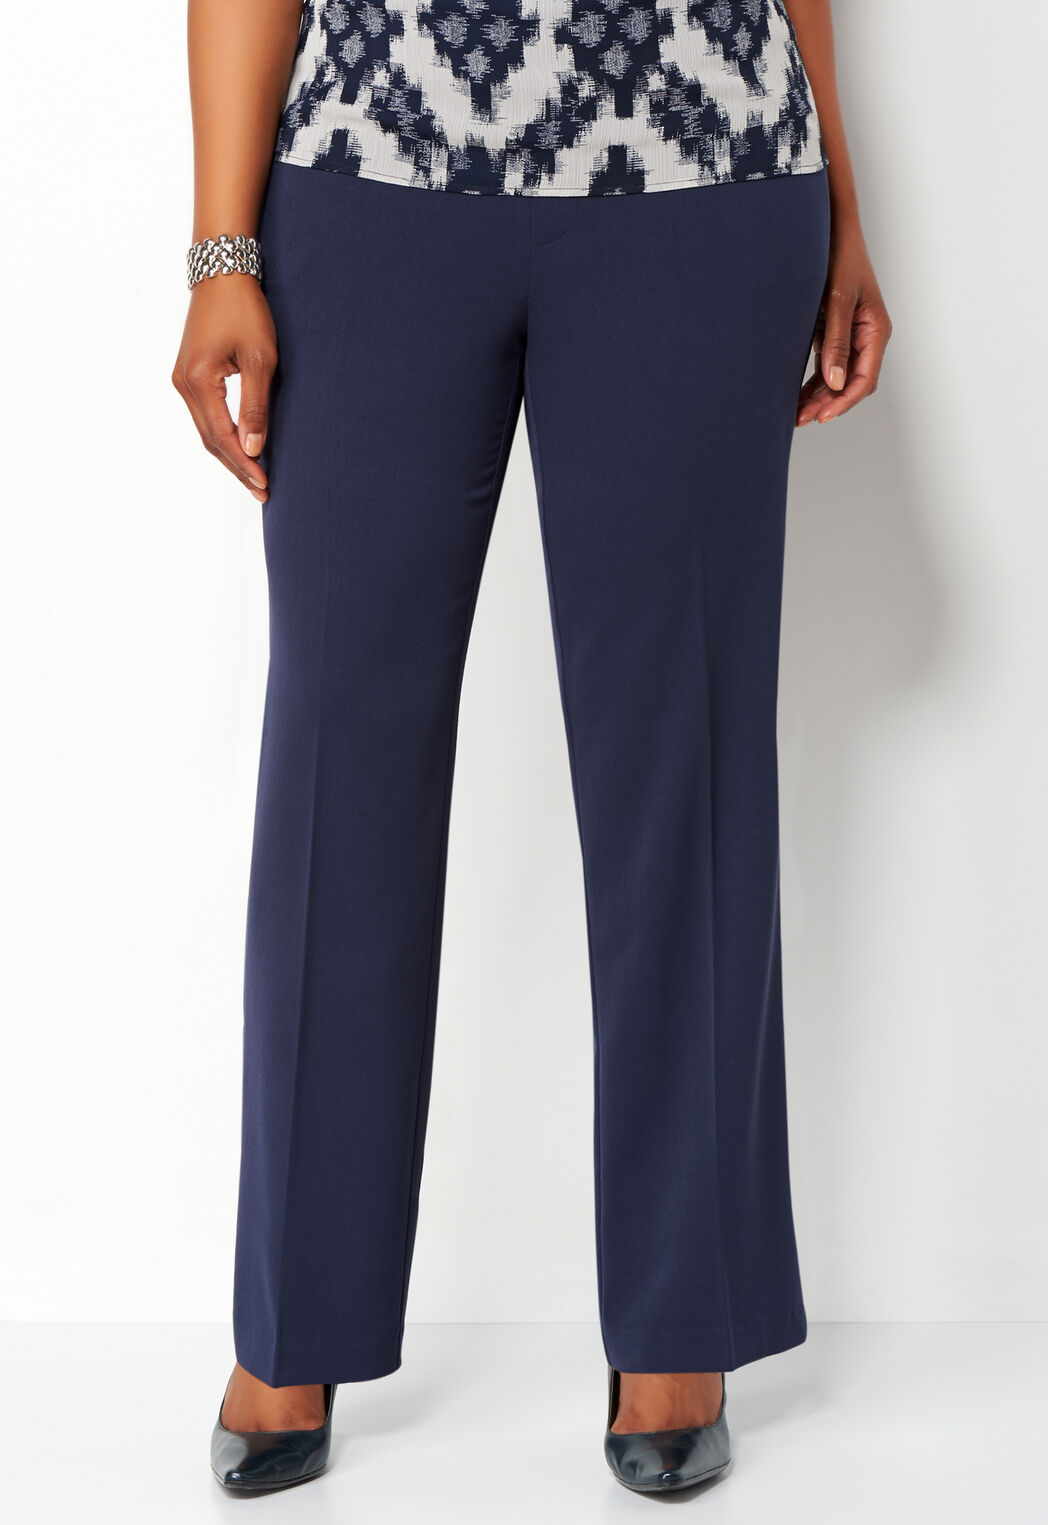 540f4d9c982 ... Pull-On Downtown Trouser Plus Size Pant Tall. Previous. add to wish list  · add to wish list